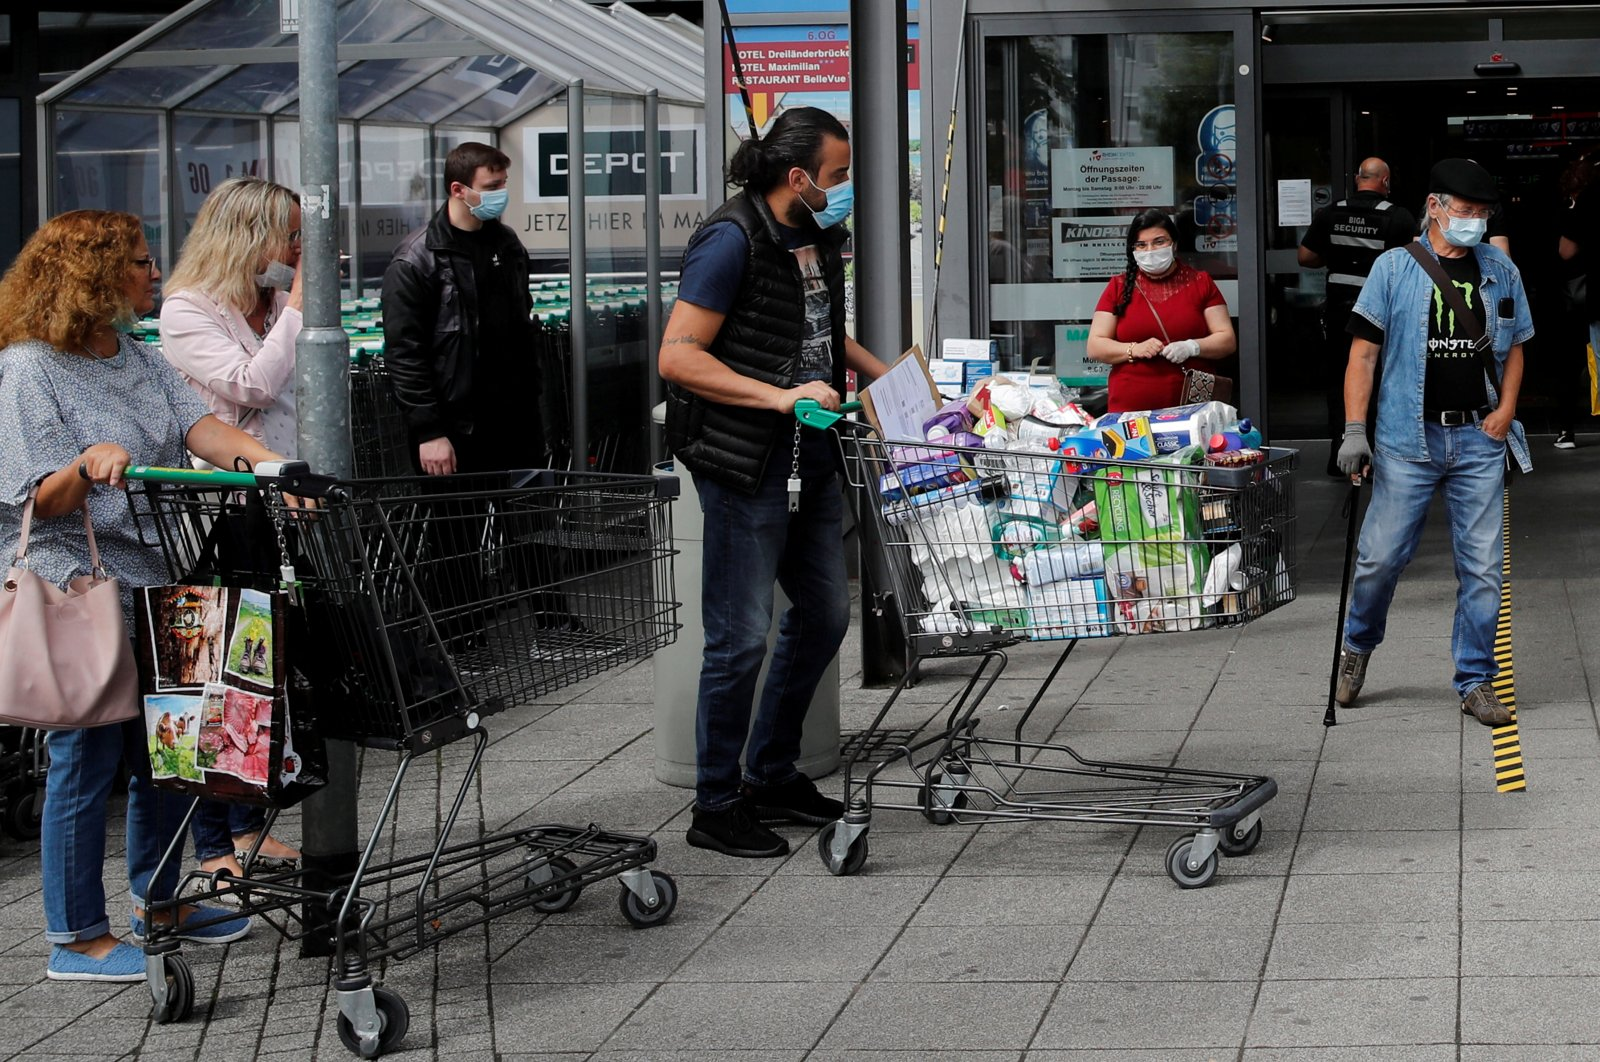 People are seen in front of the entrance of the Rhein Center shopping mall after the reopening of the borders, amid the coronavirus outbreak, in Weil am Rhein, Germany, June 15, 2020. (Reuters Photo)